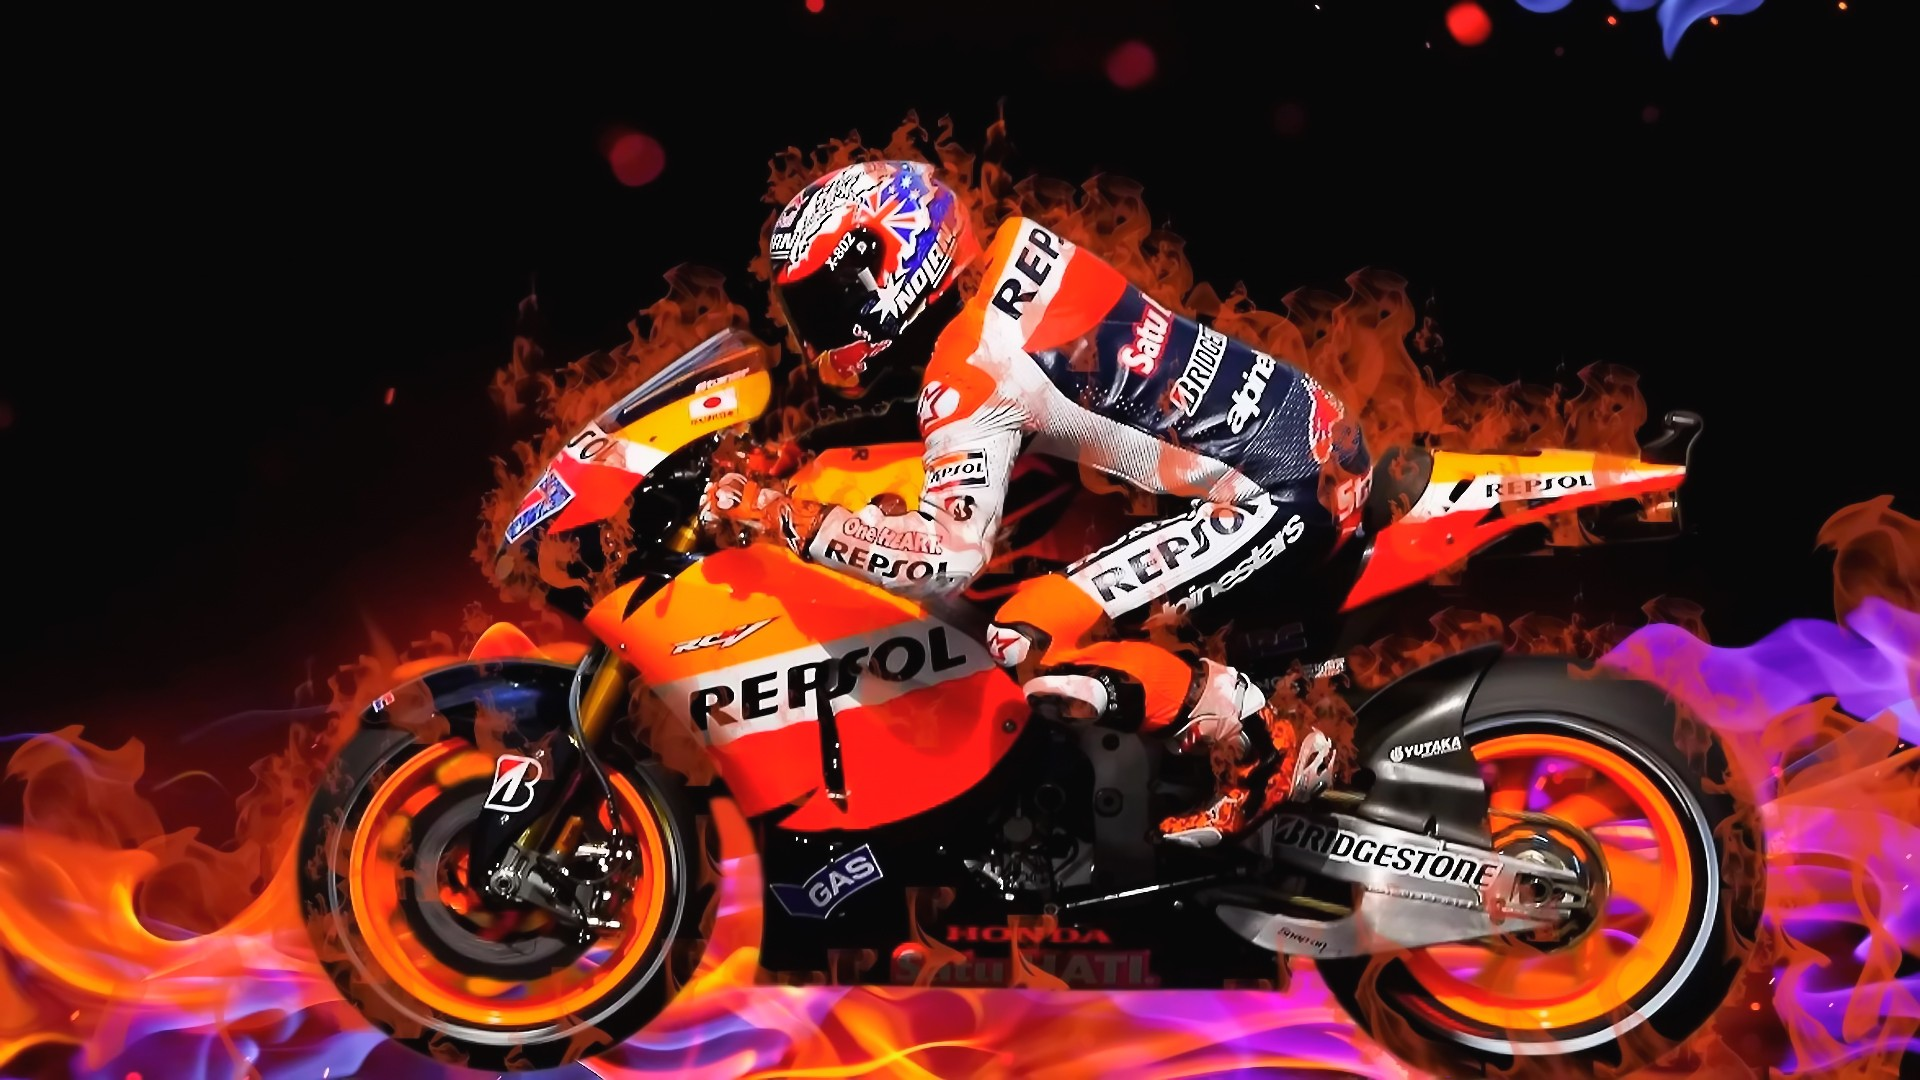 Motorcycle Racing Full HD Wallpaper and Background Image ... for Motor Racing Wallpaper  34eri